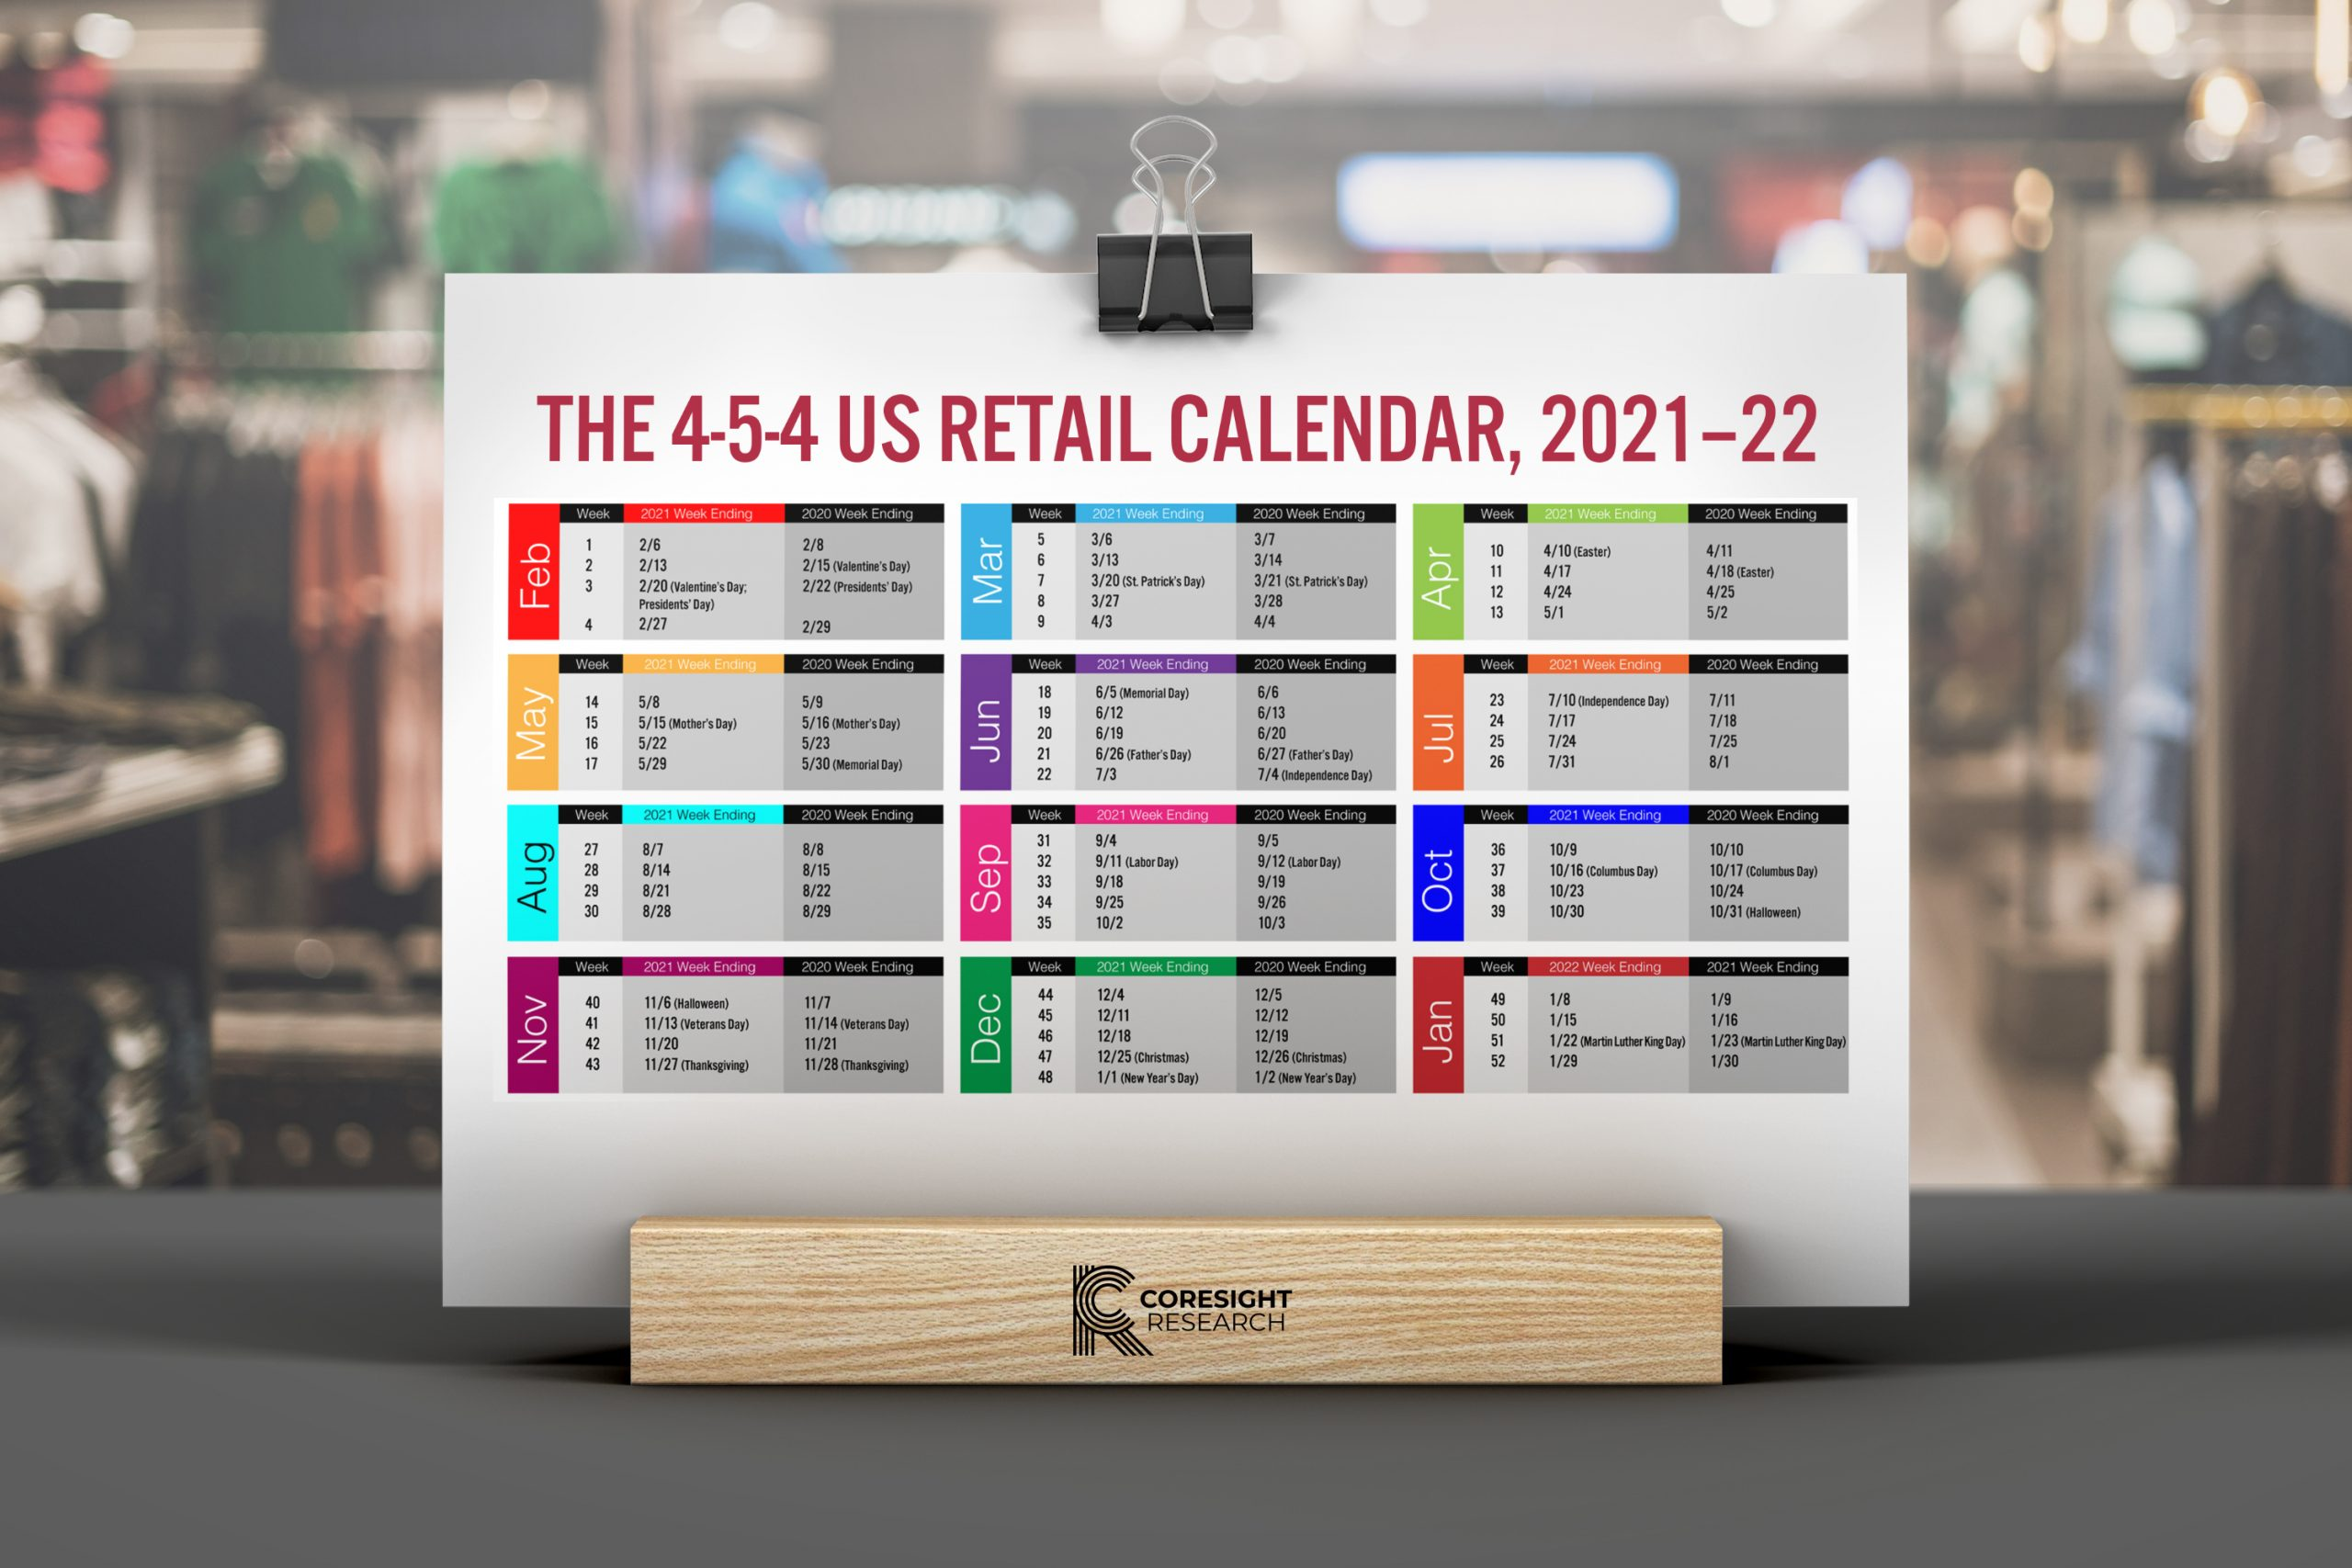 2021 Retail Calendar The 4 5 4 US Retail Calendar, 2021–22: Your Guide to the Retail